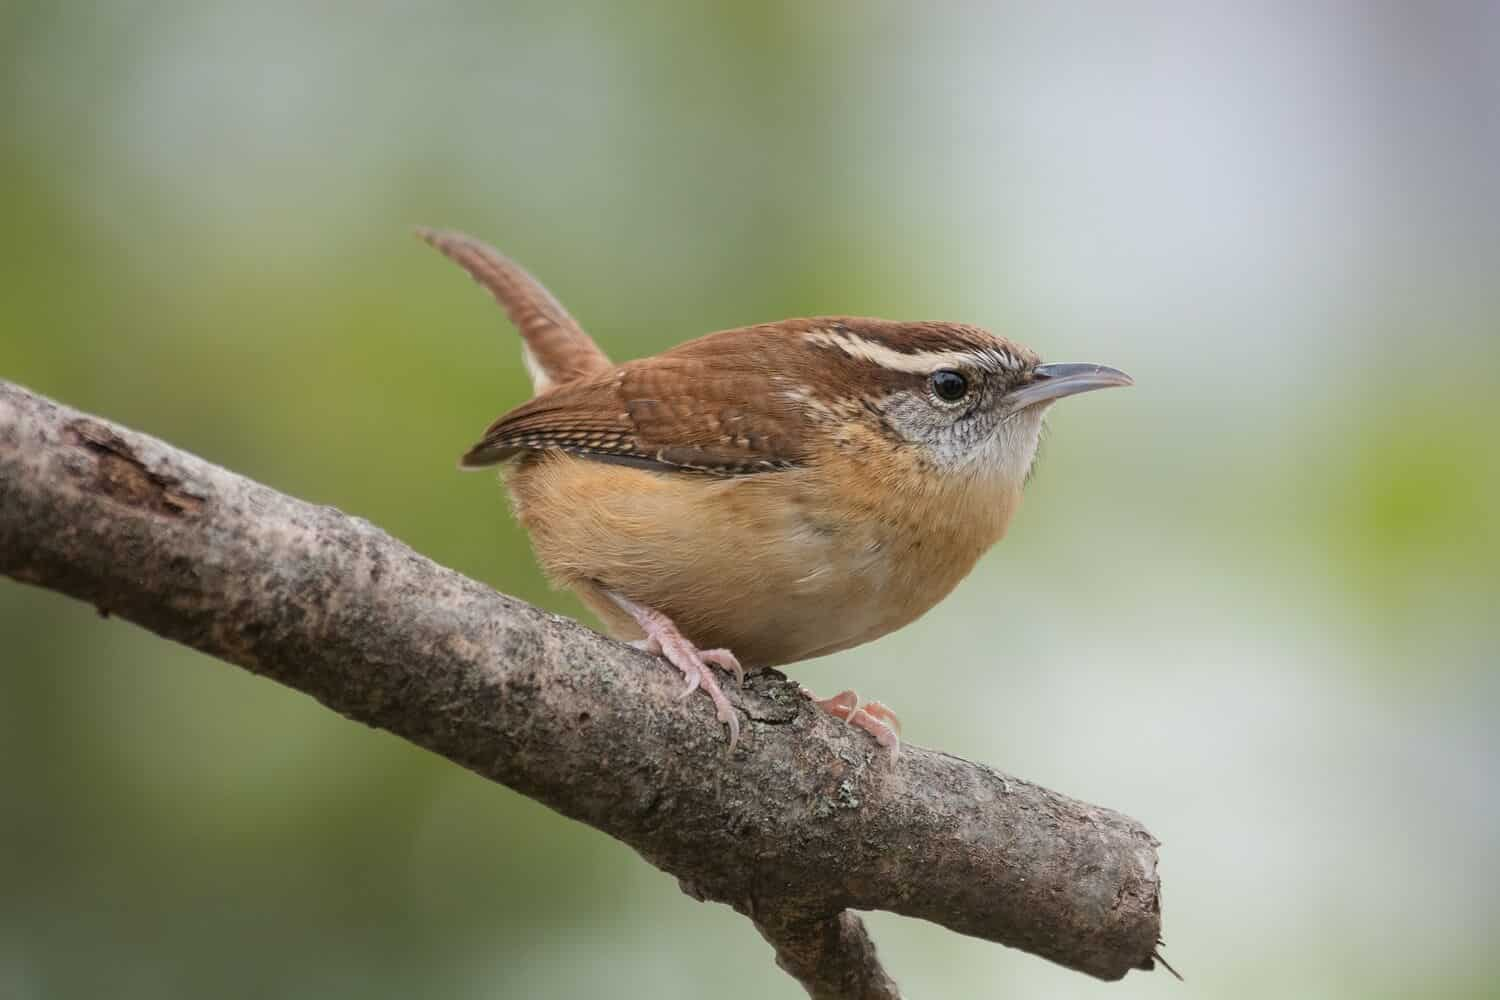 Home and Garden Improvements That Will Benefit Local Wildlife